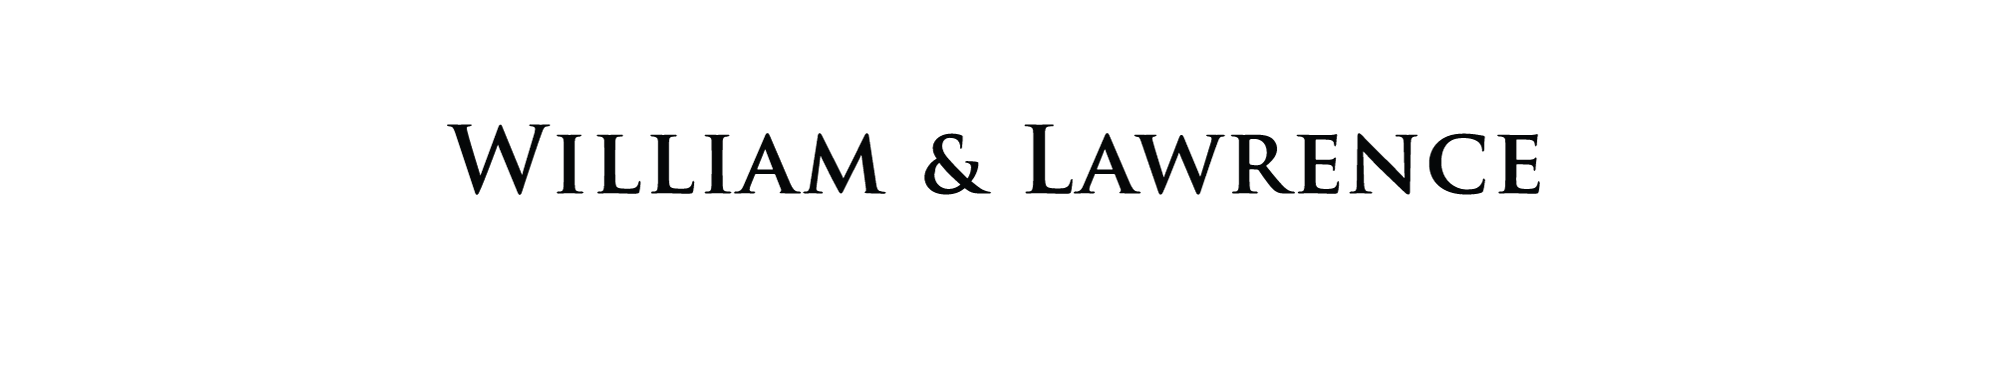 William & Lawrence Logo